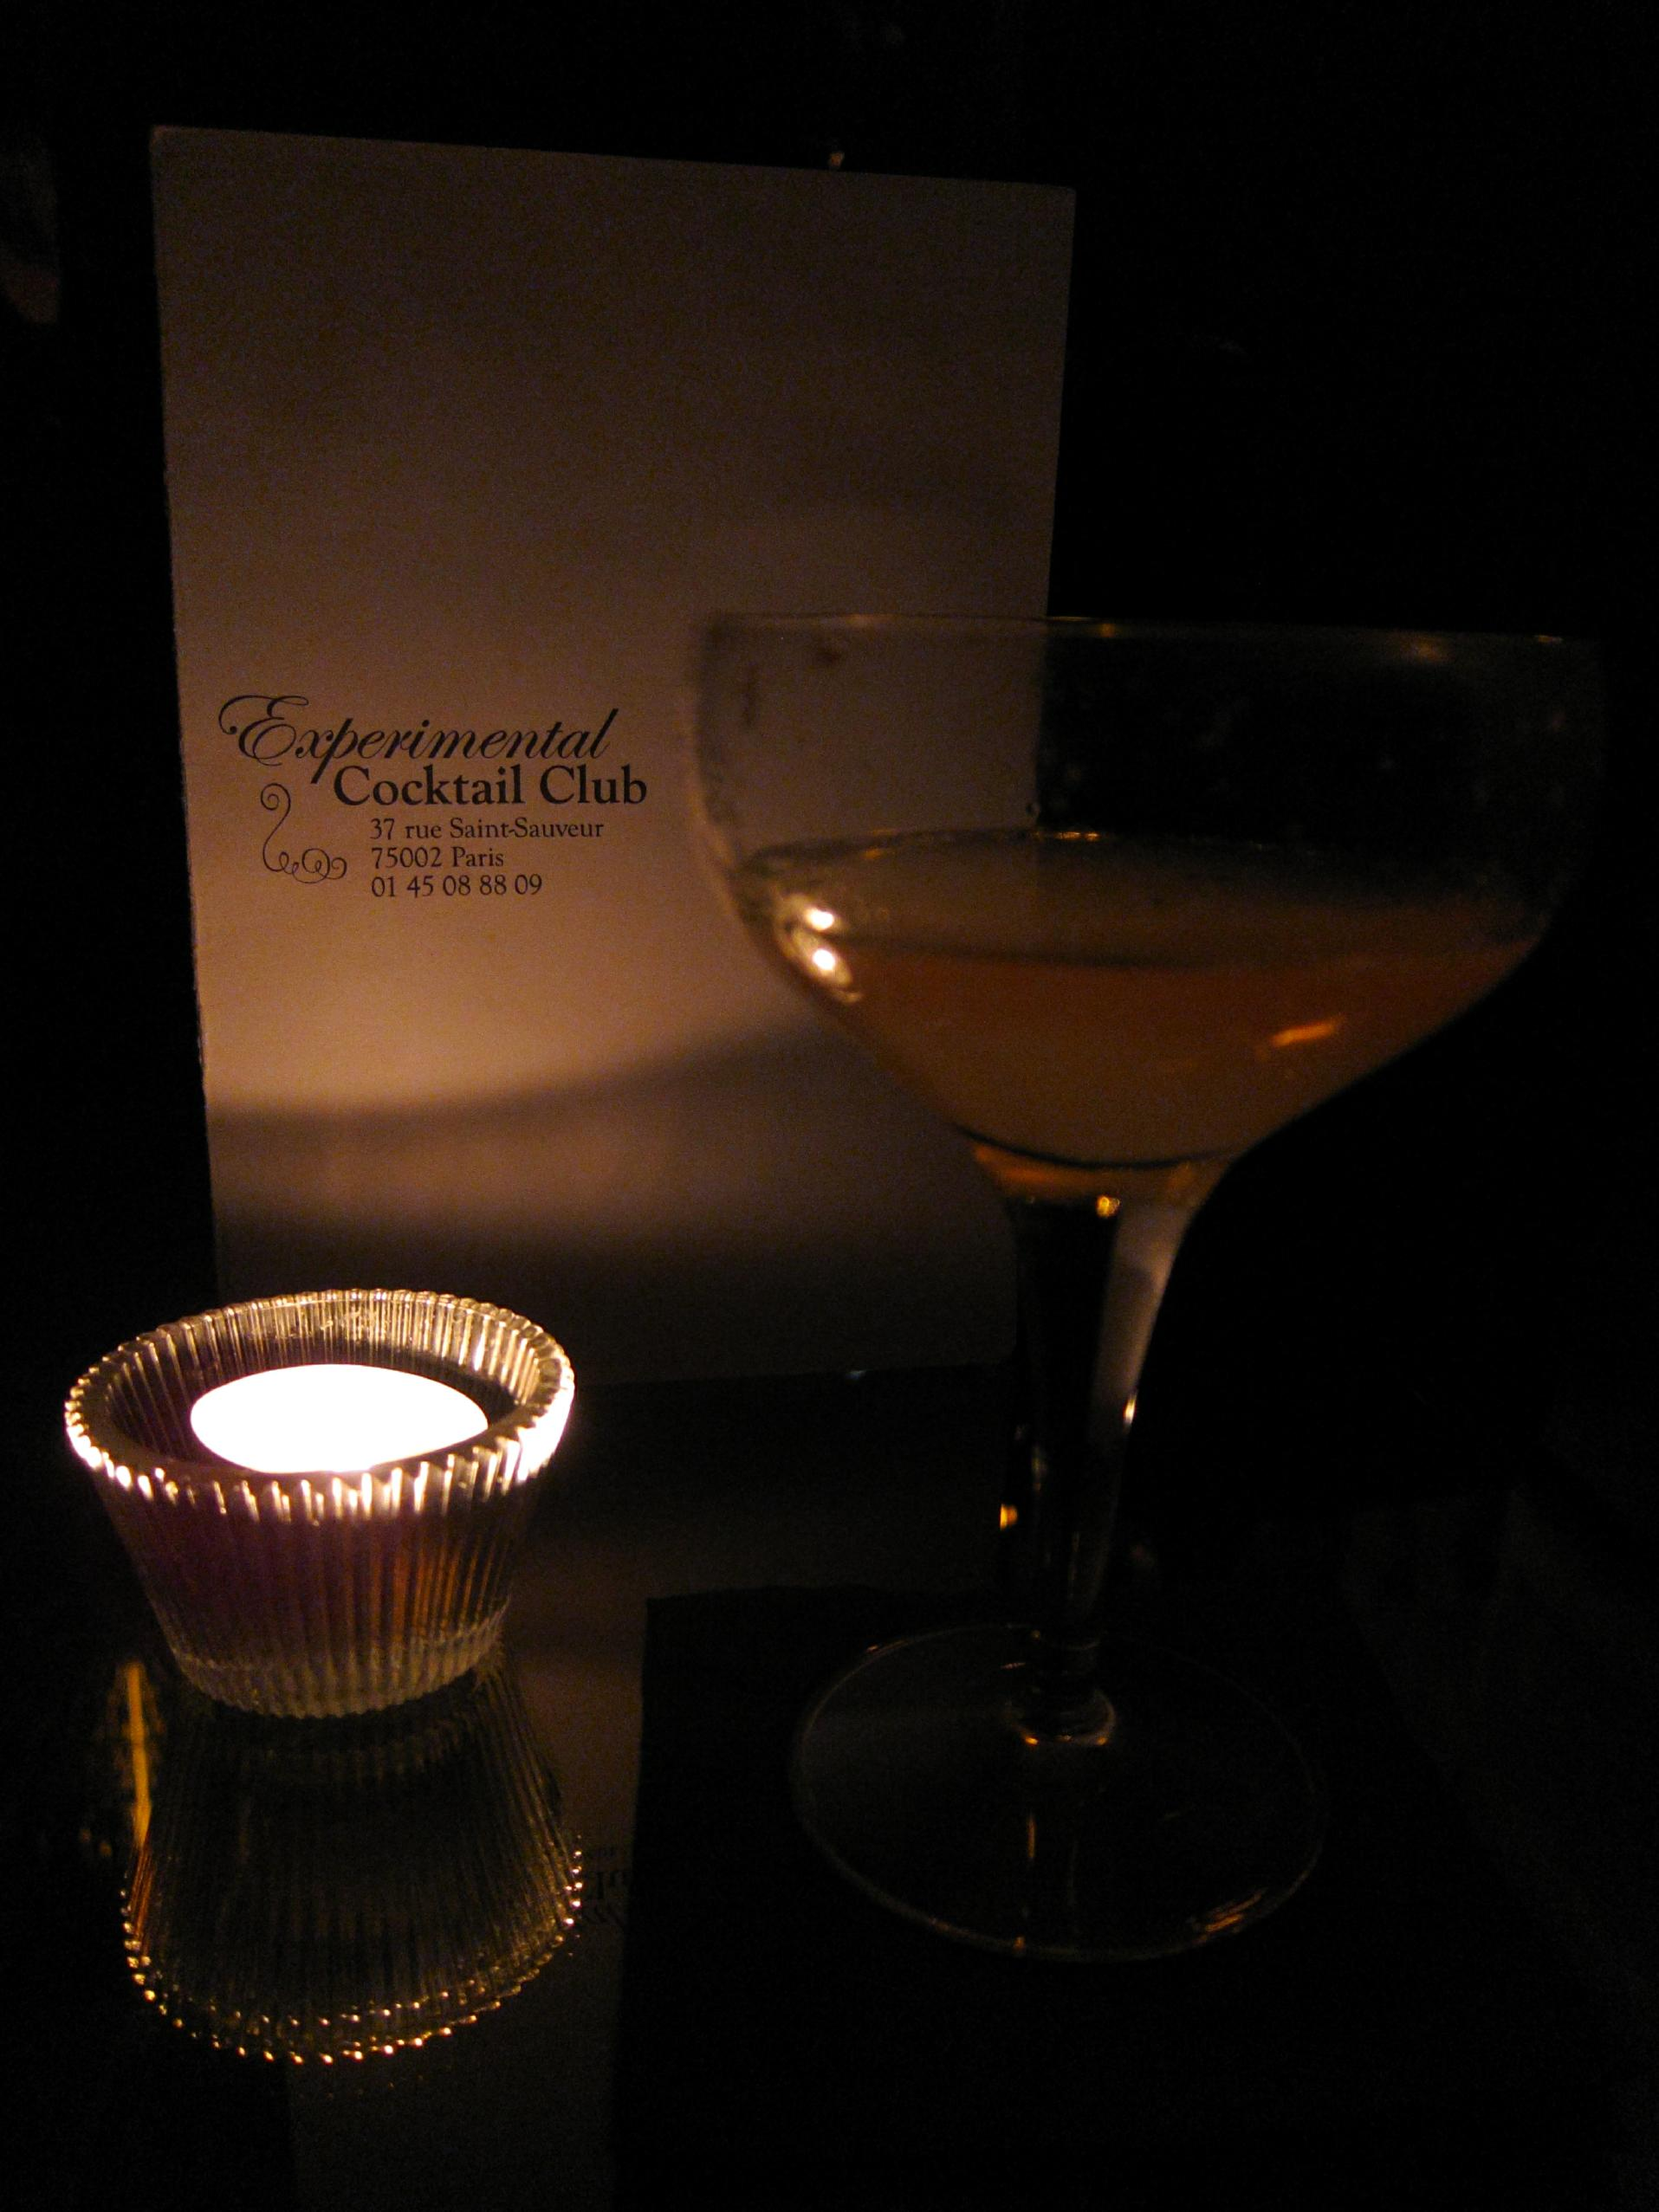 Experimental Cocktail Club - Old Havana, Candle and Menu